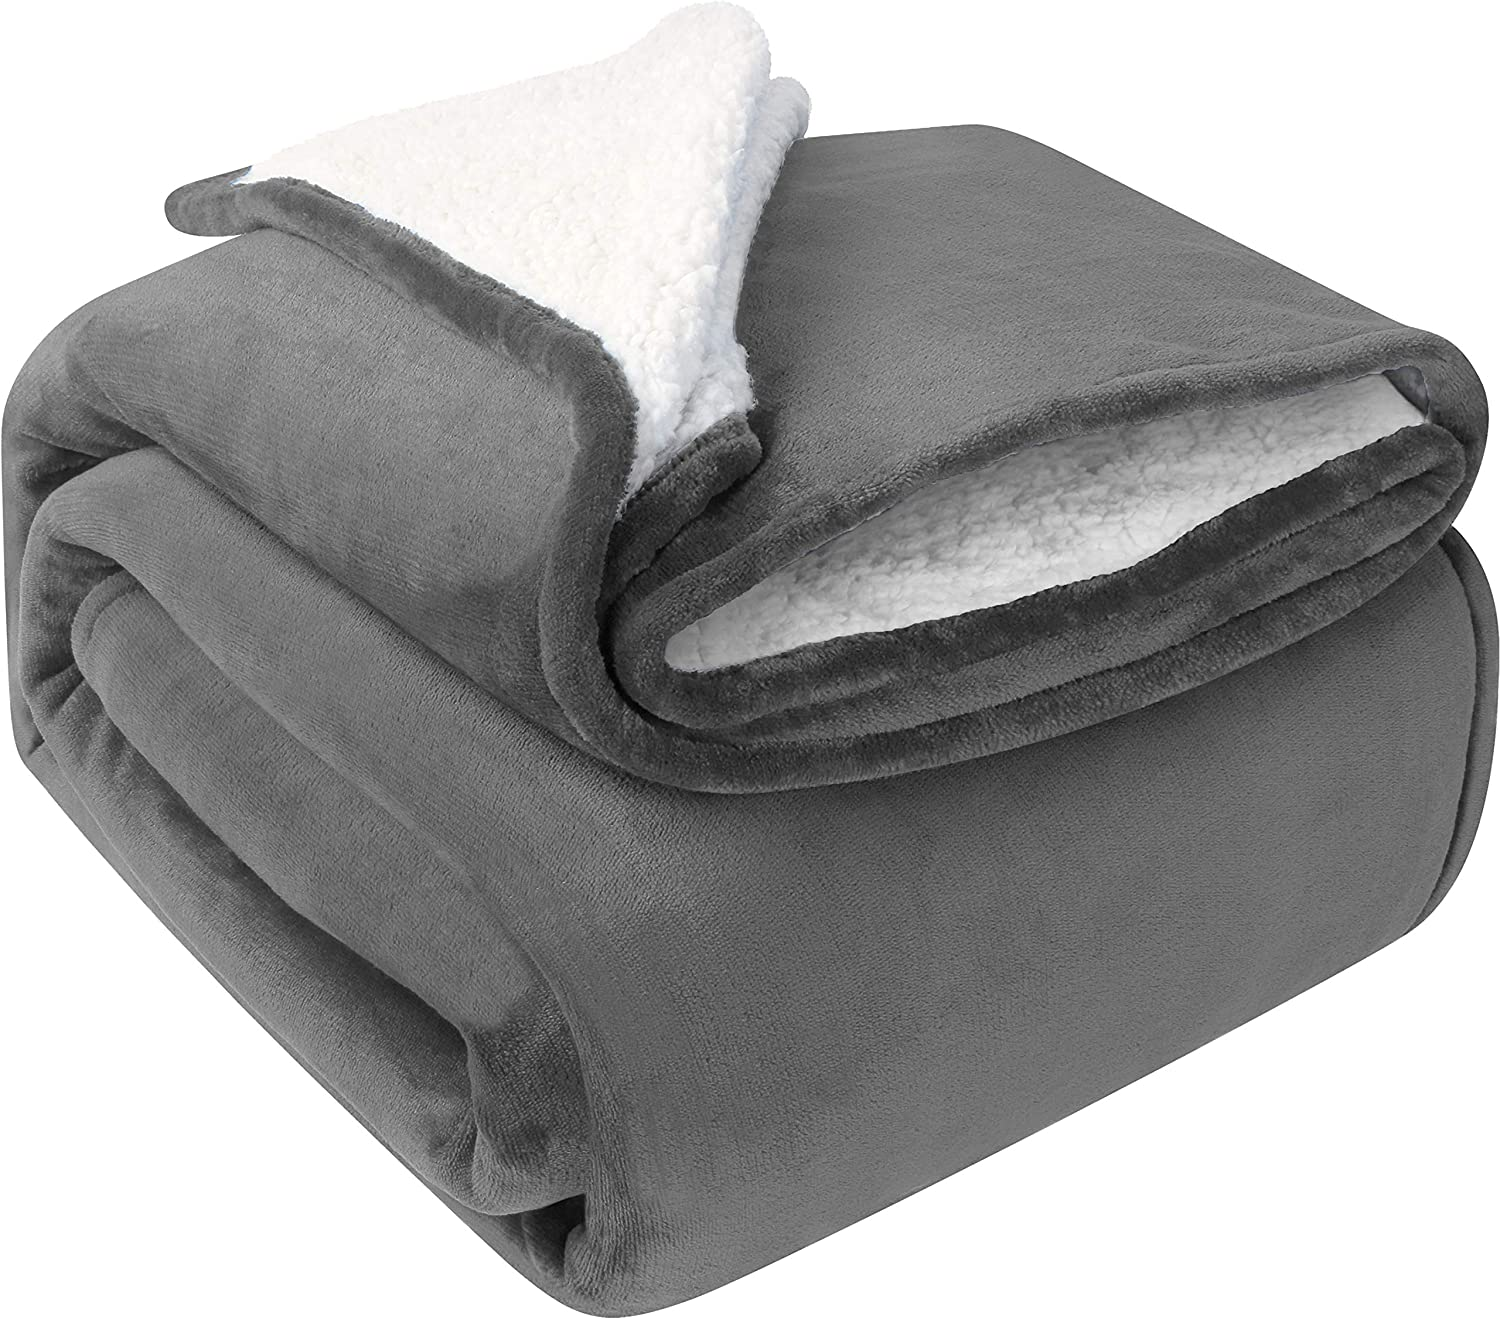 Utopia Bedding Sherpa Bed Blanket Throw Size Grey 480GSM Plush Blanket Fleece Reversible Blanket for Bed and Couch: Kitchen & Dining